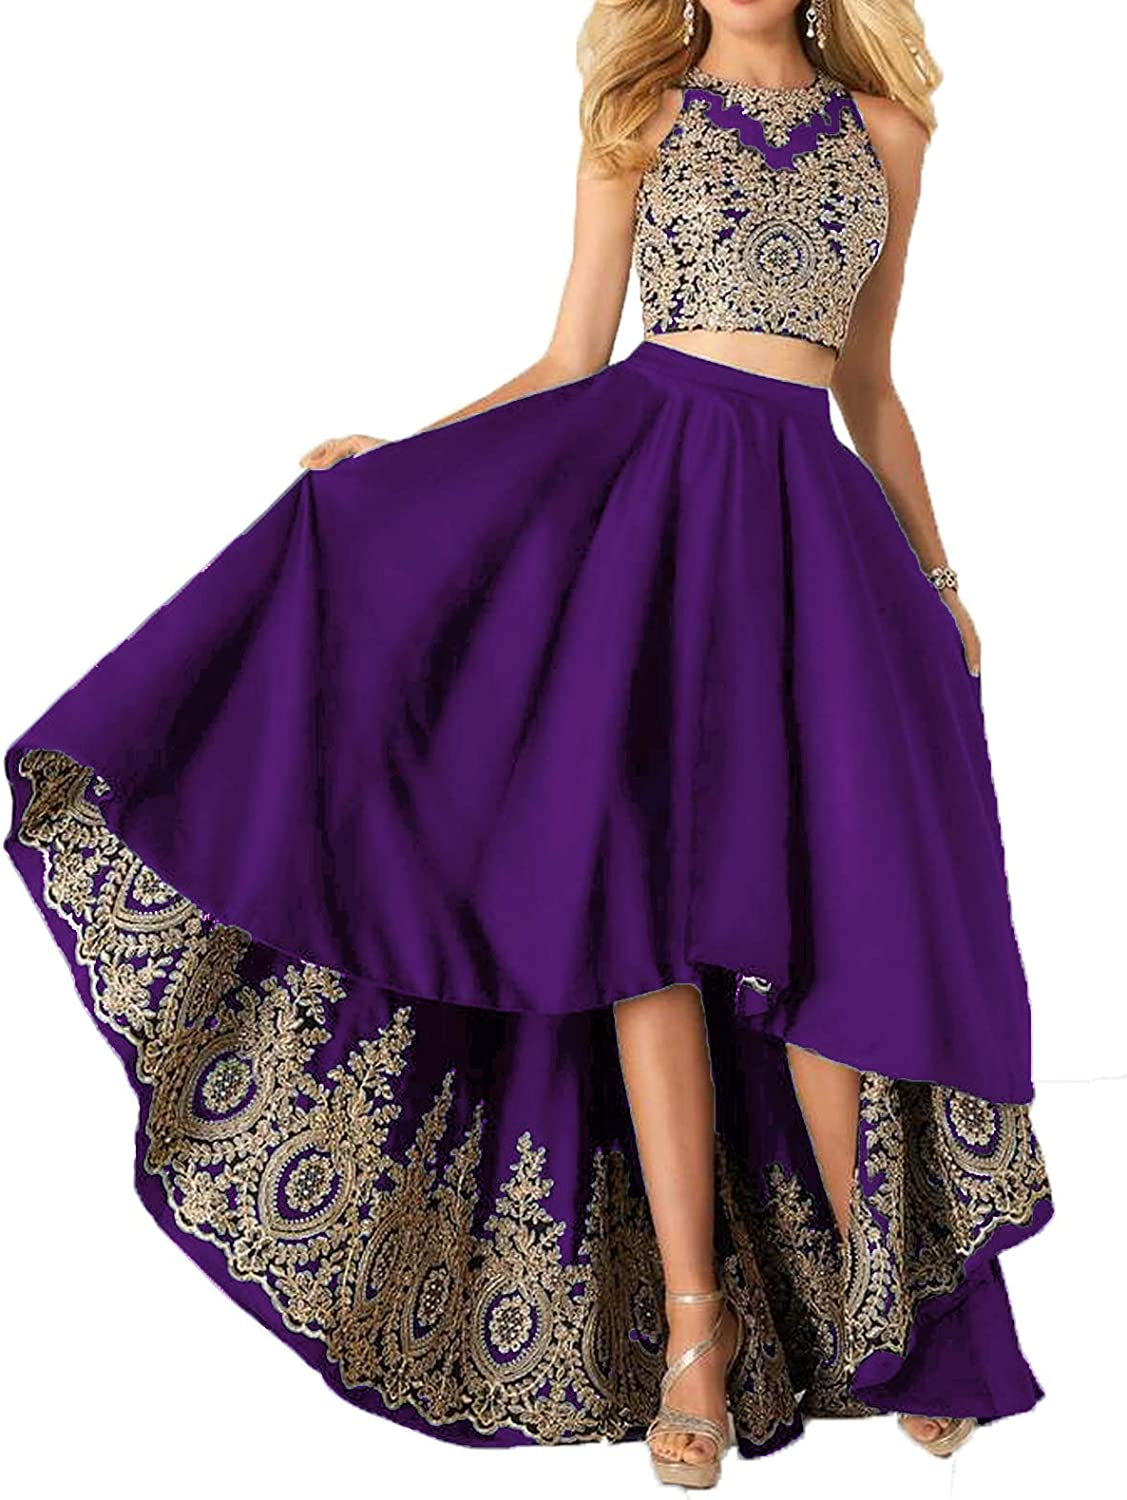 Udresses Two Piece Homecoming Satin Dress Aline Applique Lace Formal Prom Gowns